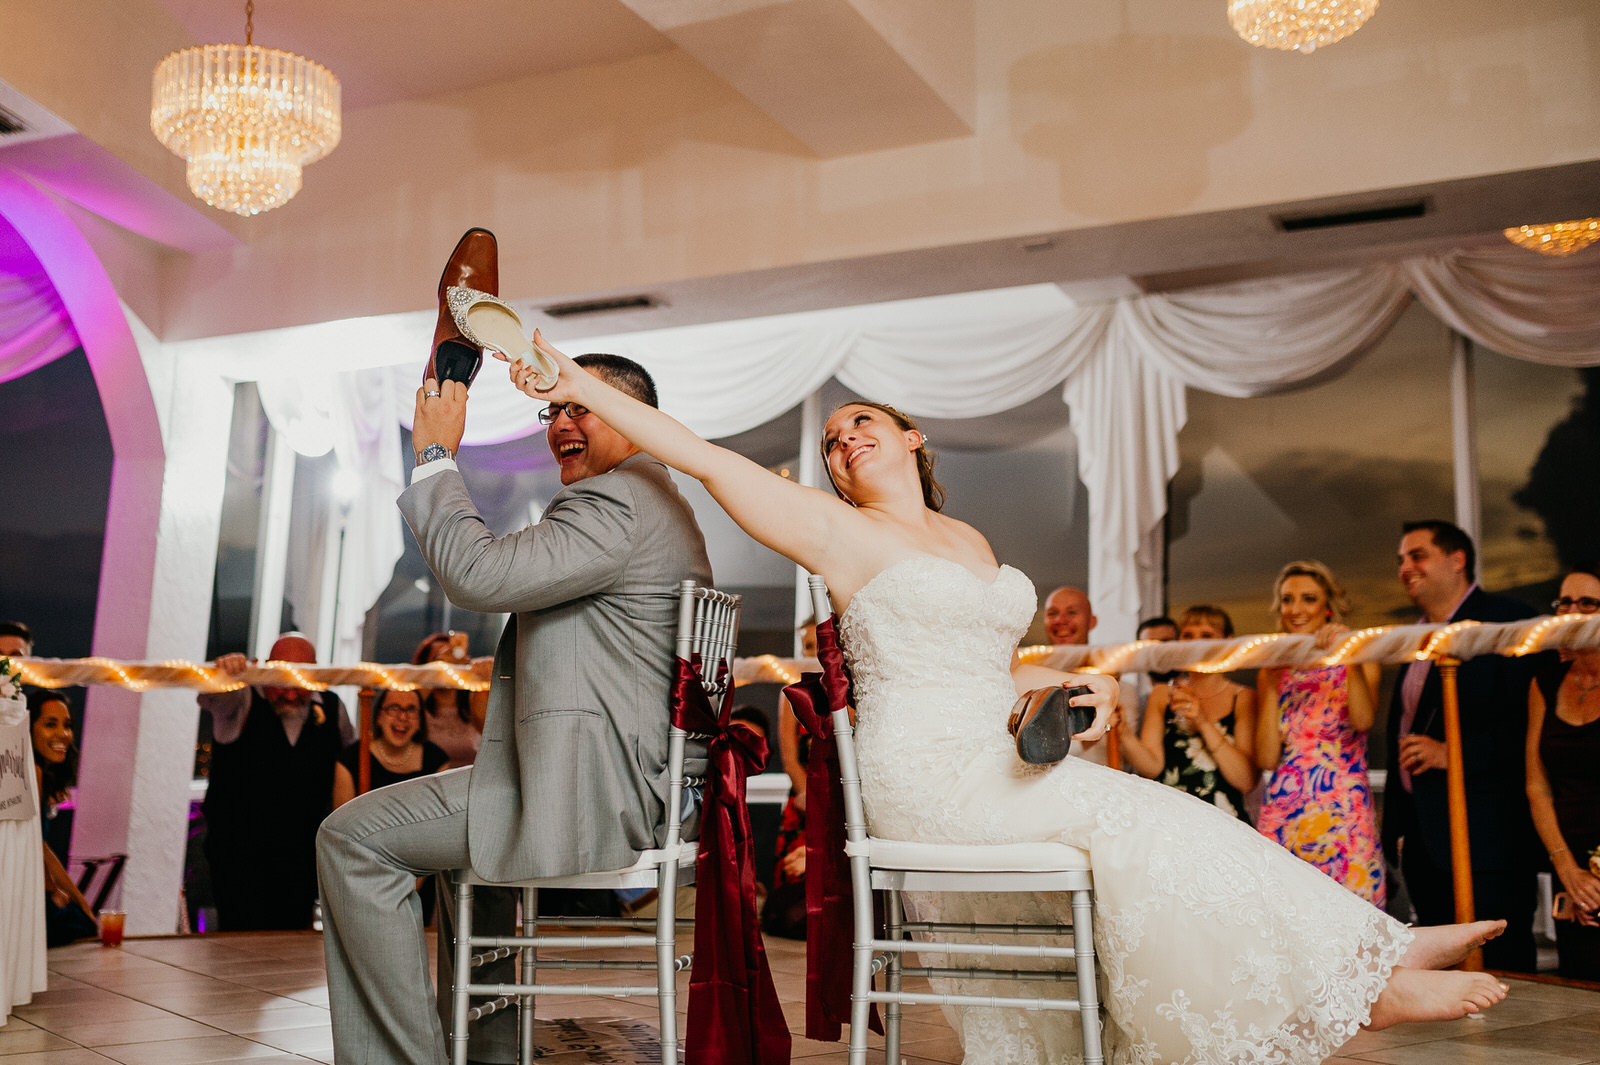 Mcneile_Photography_Wedding56.jpg